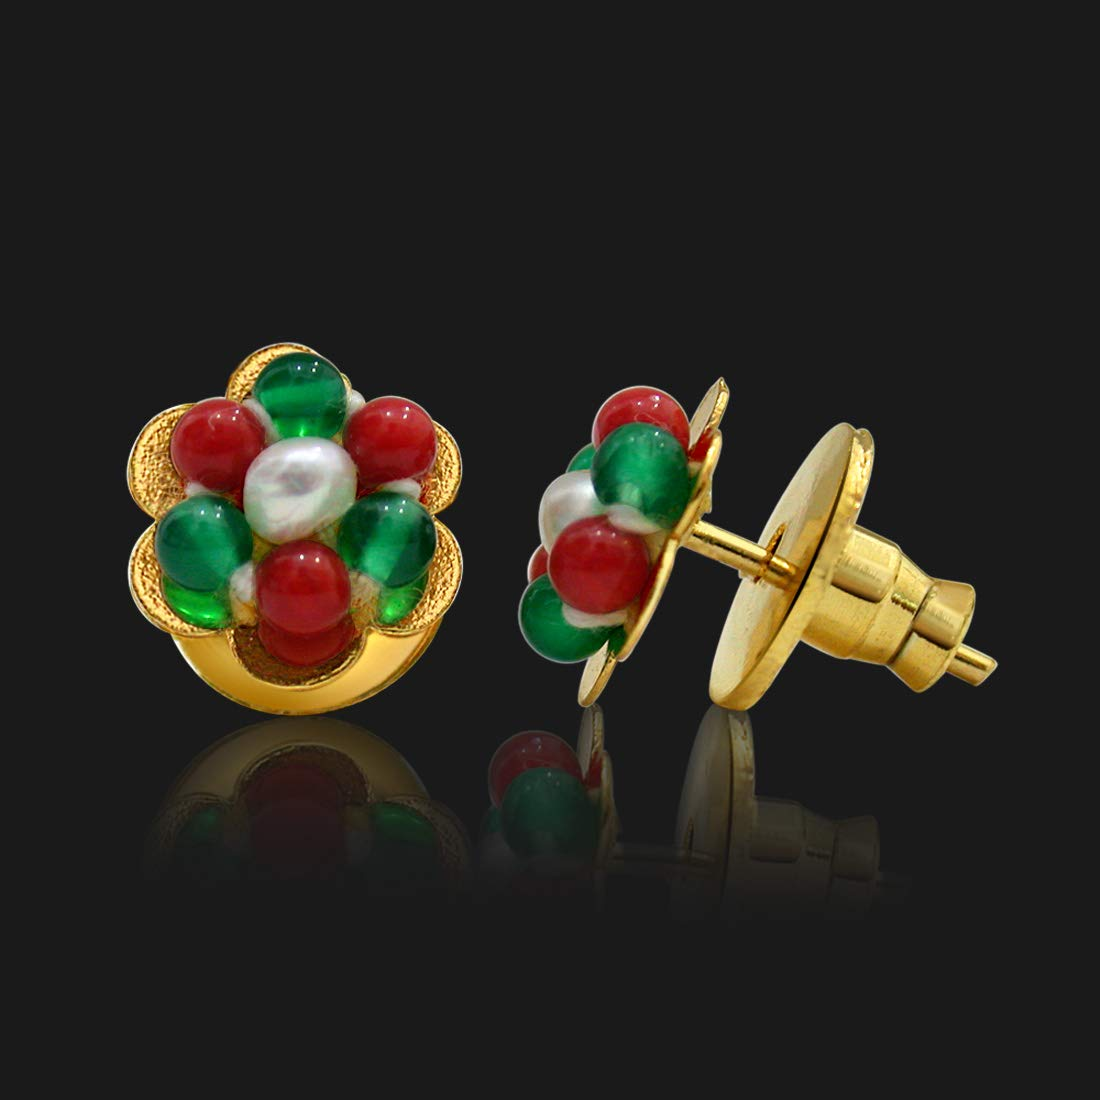 Real Green Onyx & Red Coral Beads Kuda Jodi Earrings for Women (SE111)